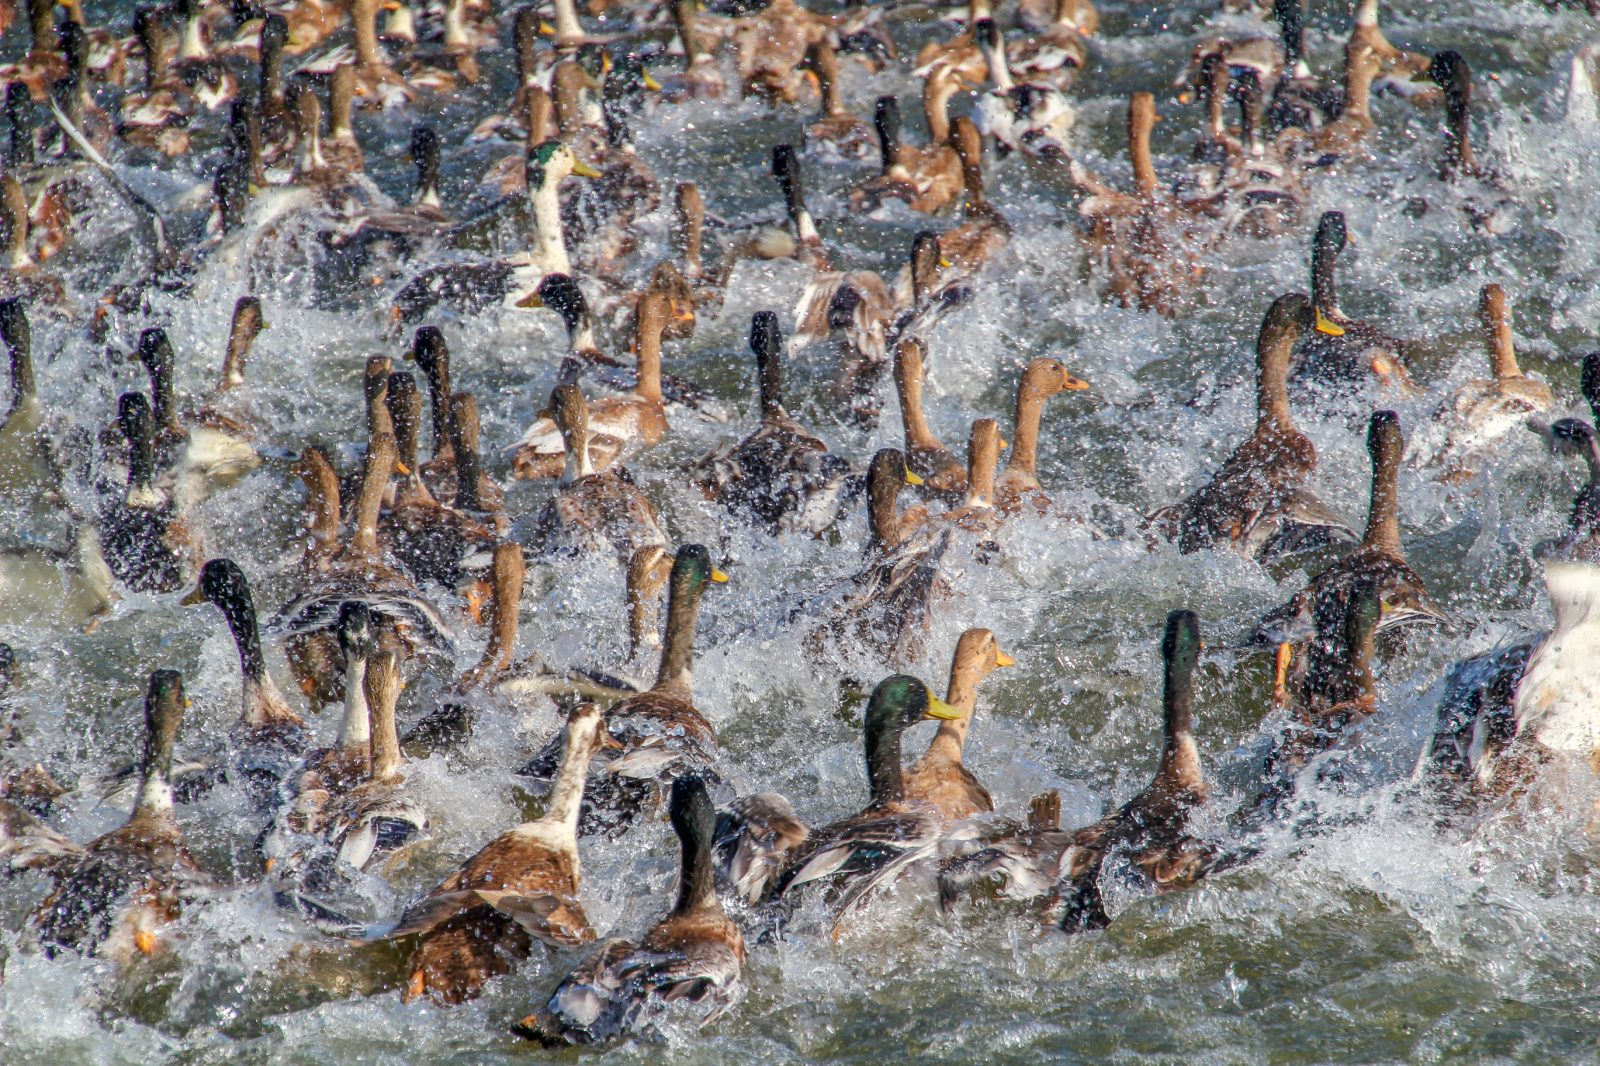 Ducks fleeing